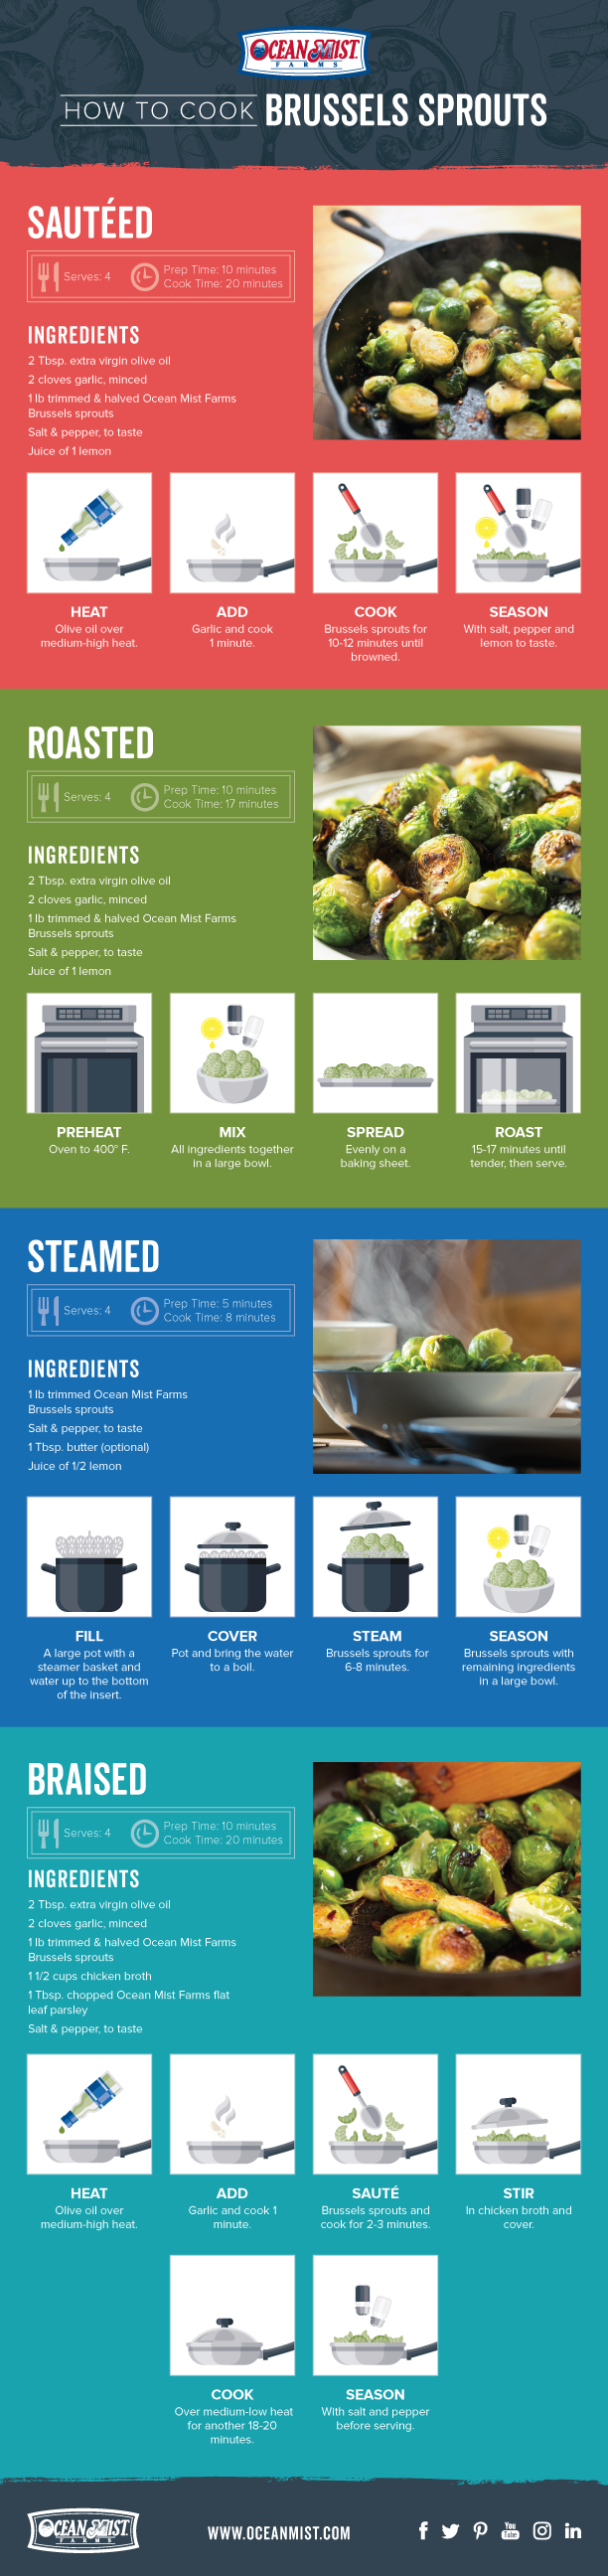 OM_How-to-Cook-Brussels-Sprouts_Infographic